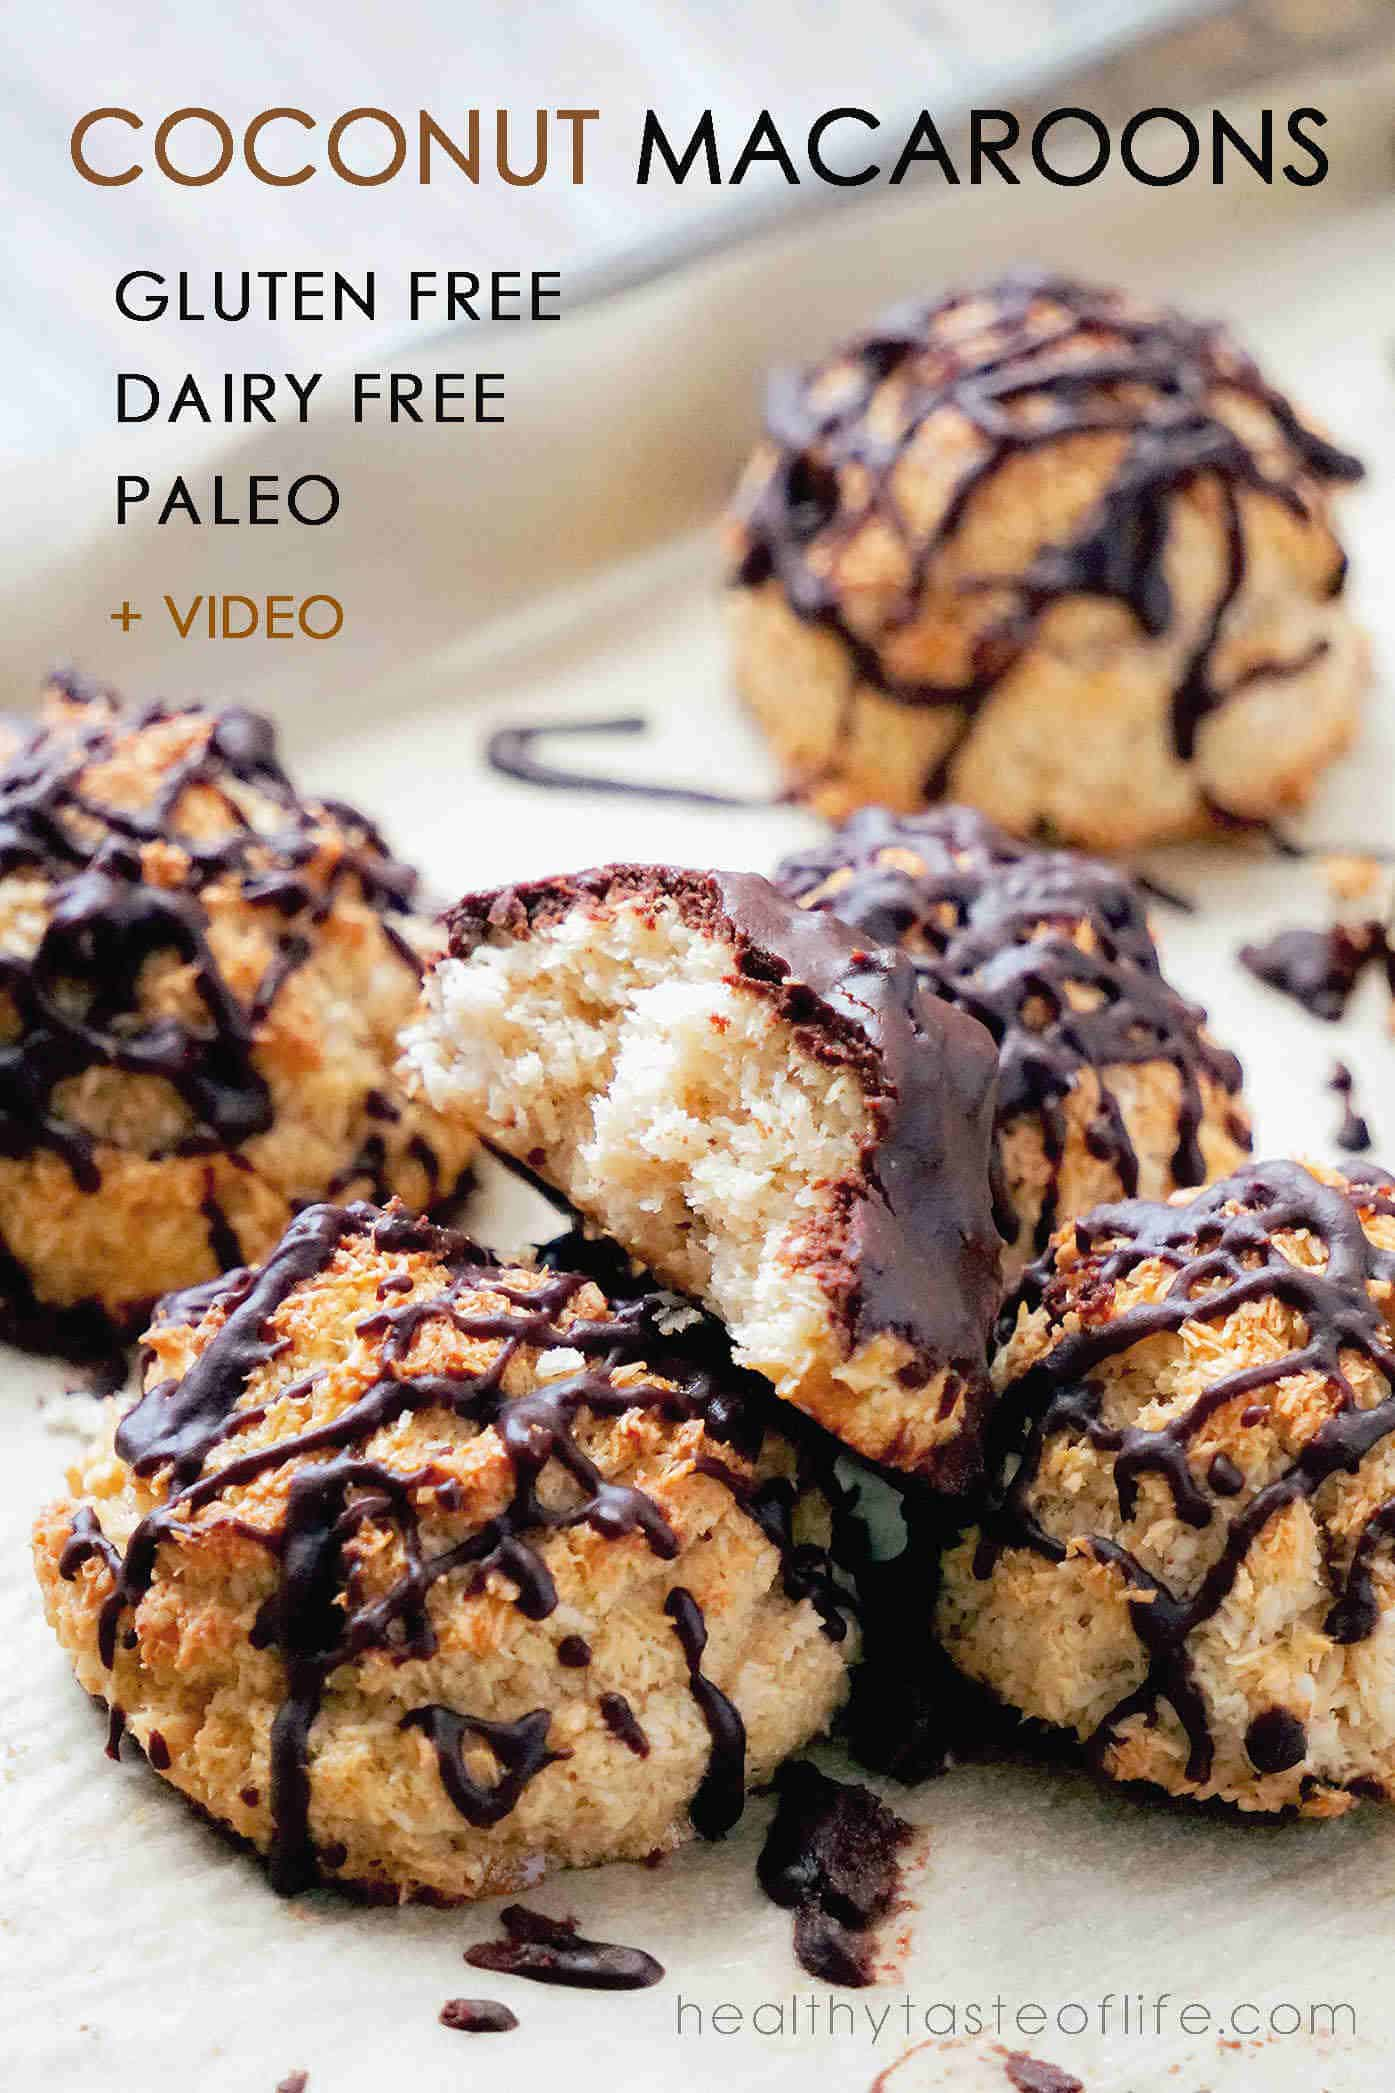 Gluten free dairy free coconut macaroons also refined sugar free and paleo friendly coconut based macaroons.